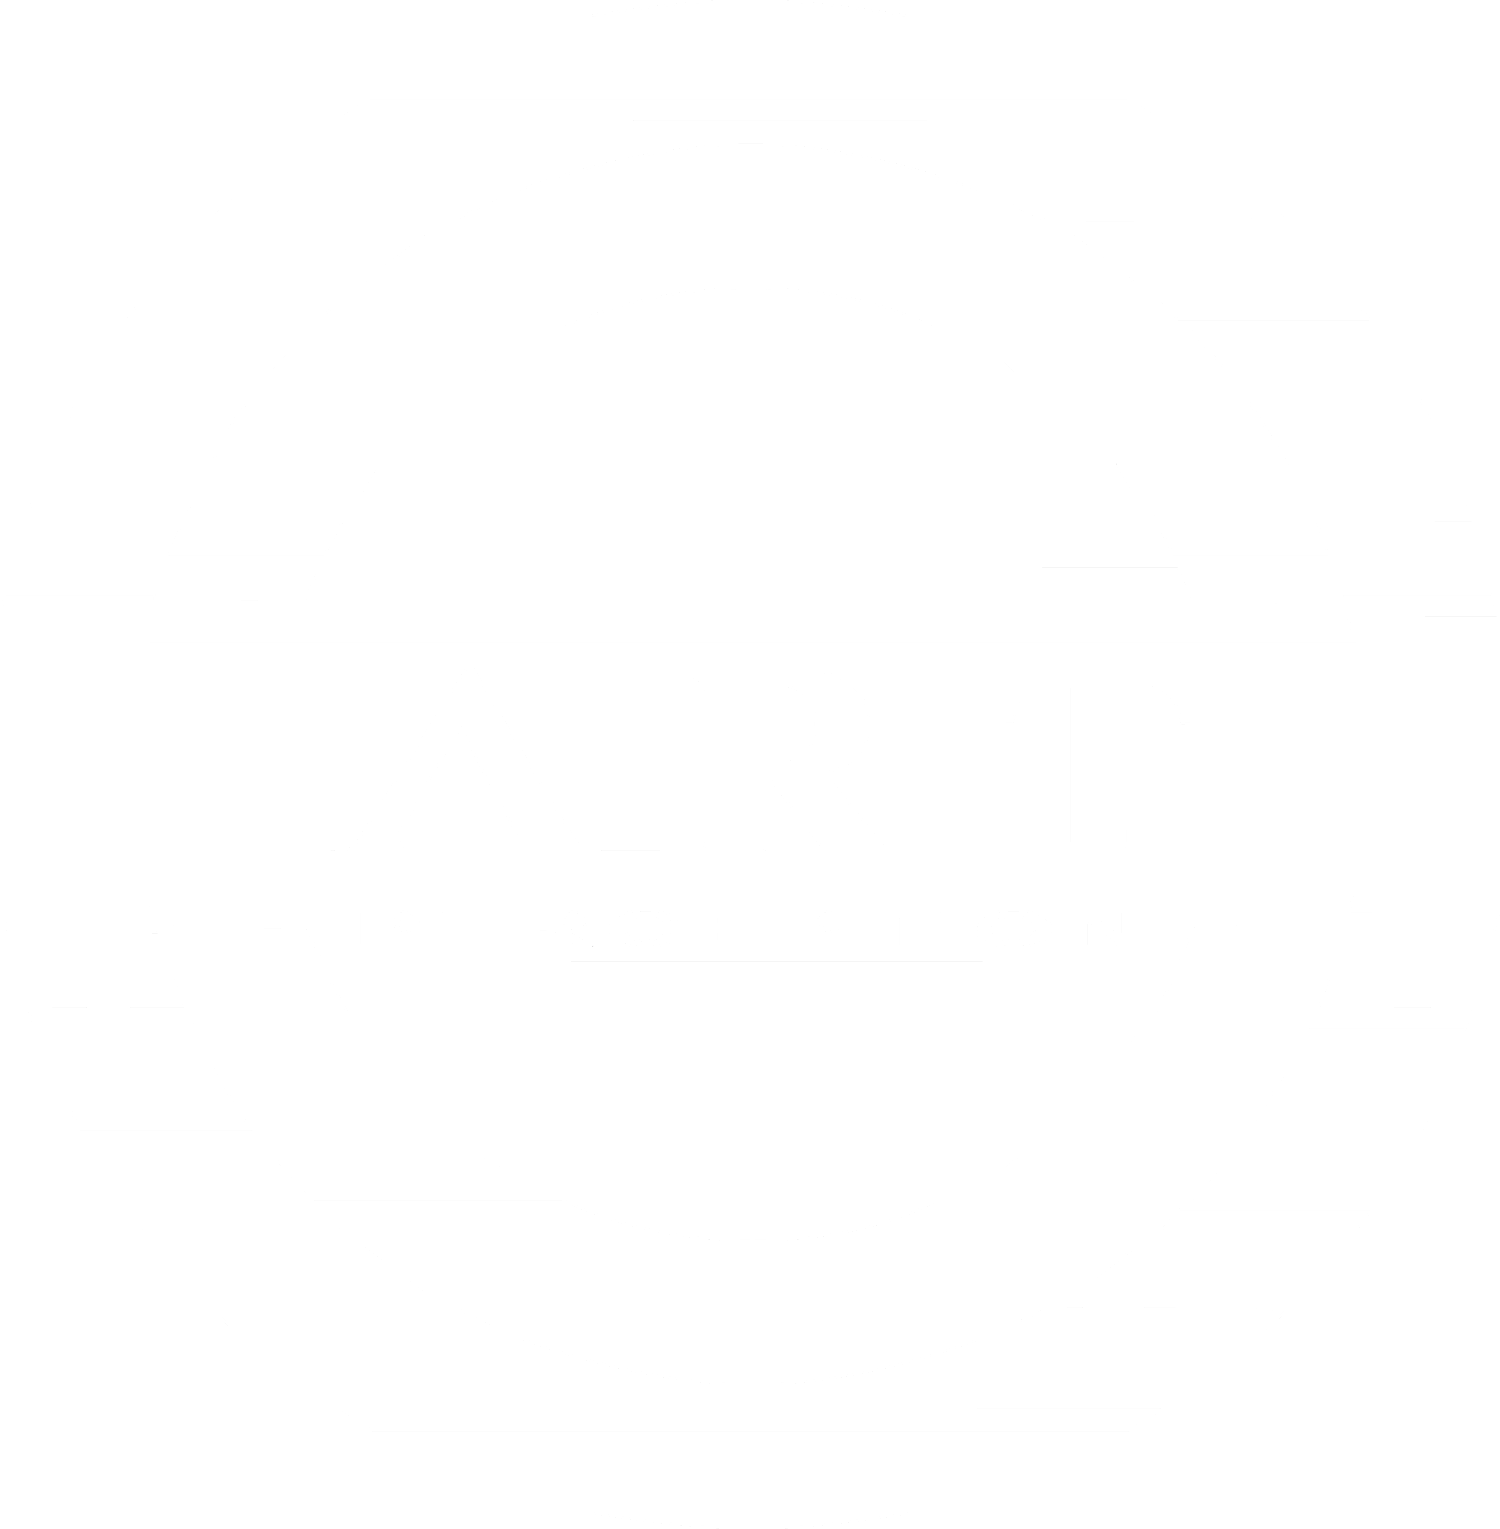 Art Perception